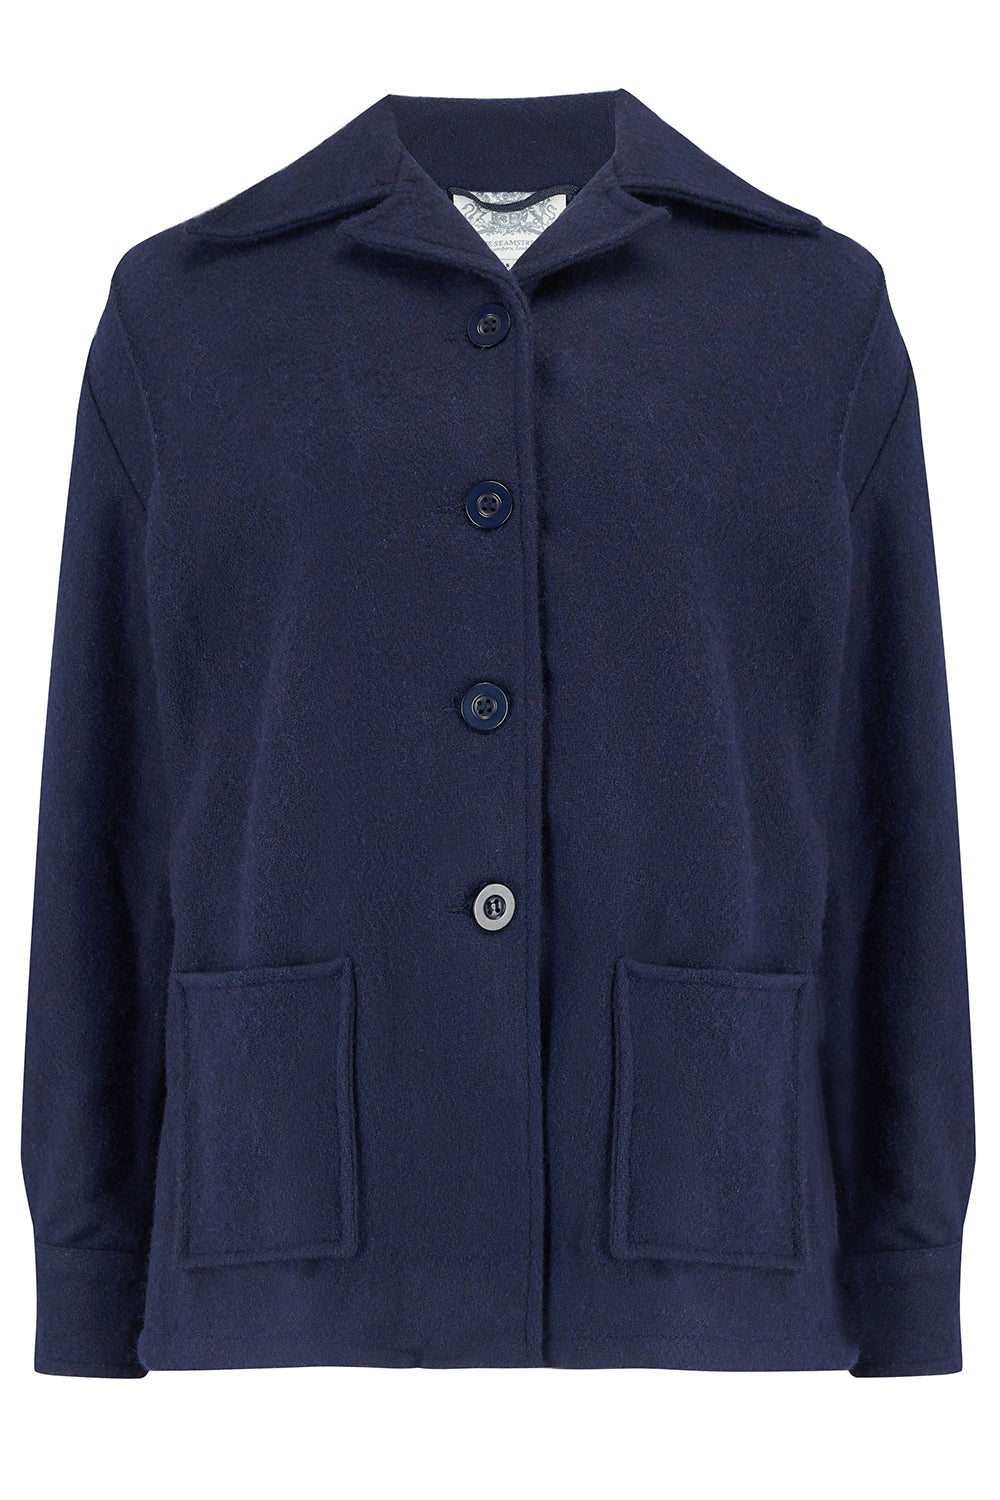 1940s Style Coats and Jackets for Sale Pearl Pendleton Style 49er Jacket in Navy Wool Classic 1940s Style £85.00 AT vintagedancer.com